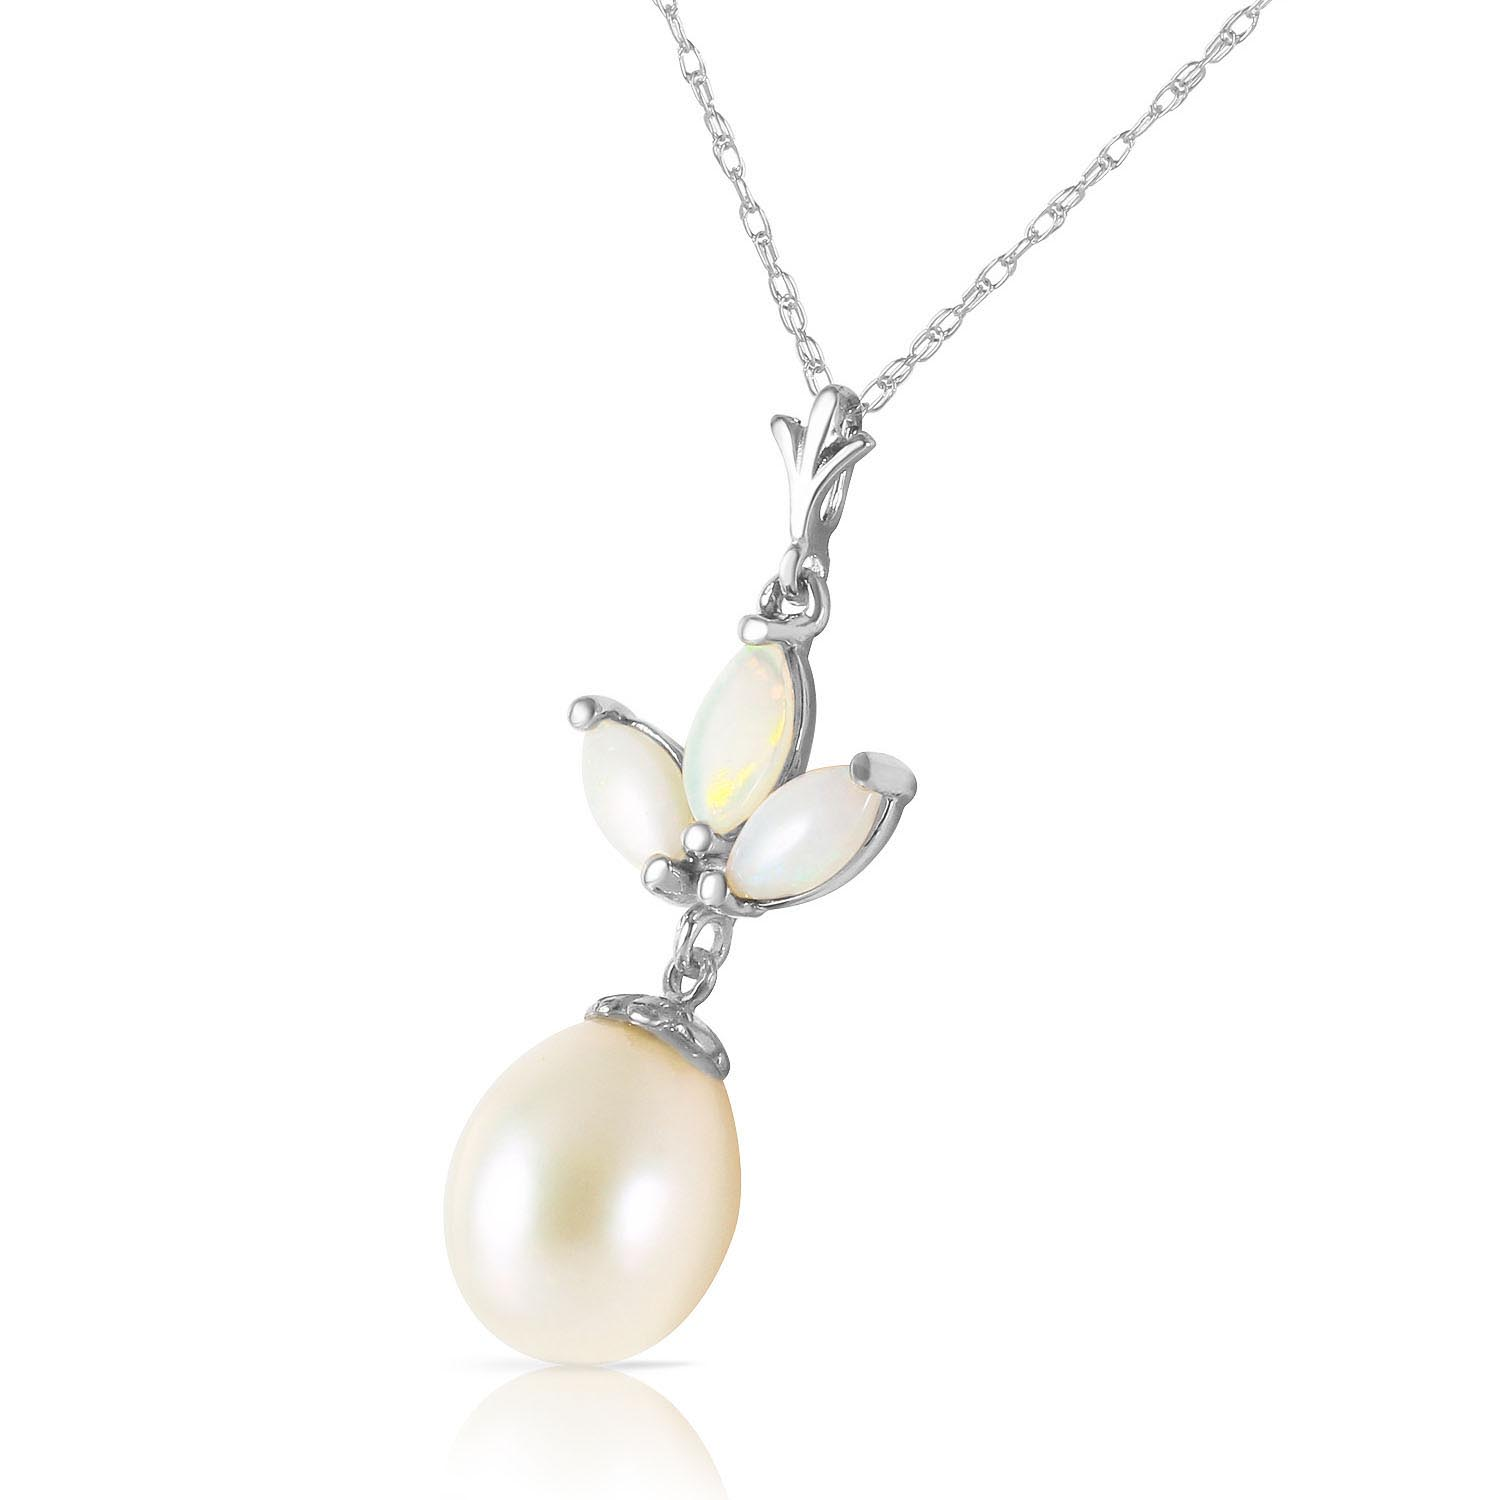 Pearl and Opal Petal Pendant Necklace 4.75ctw in 14K White Gold